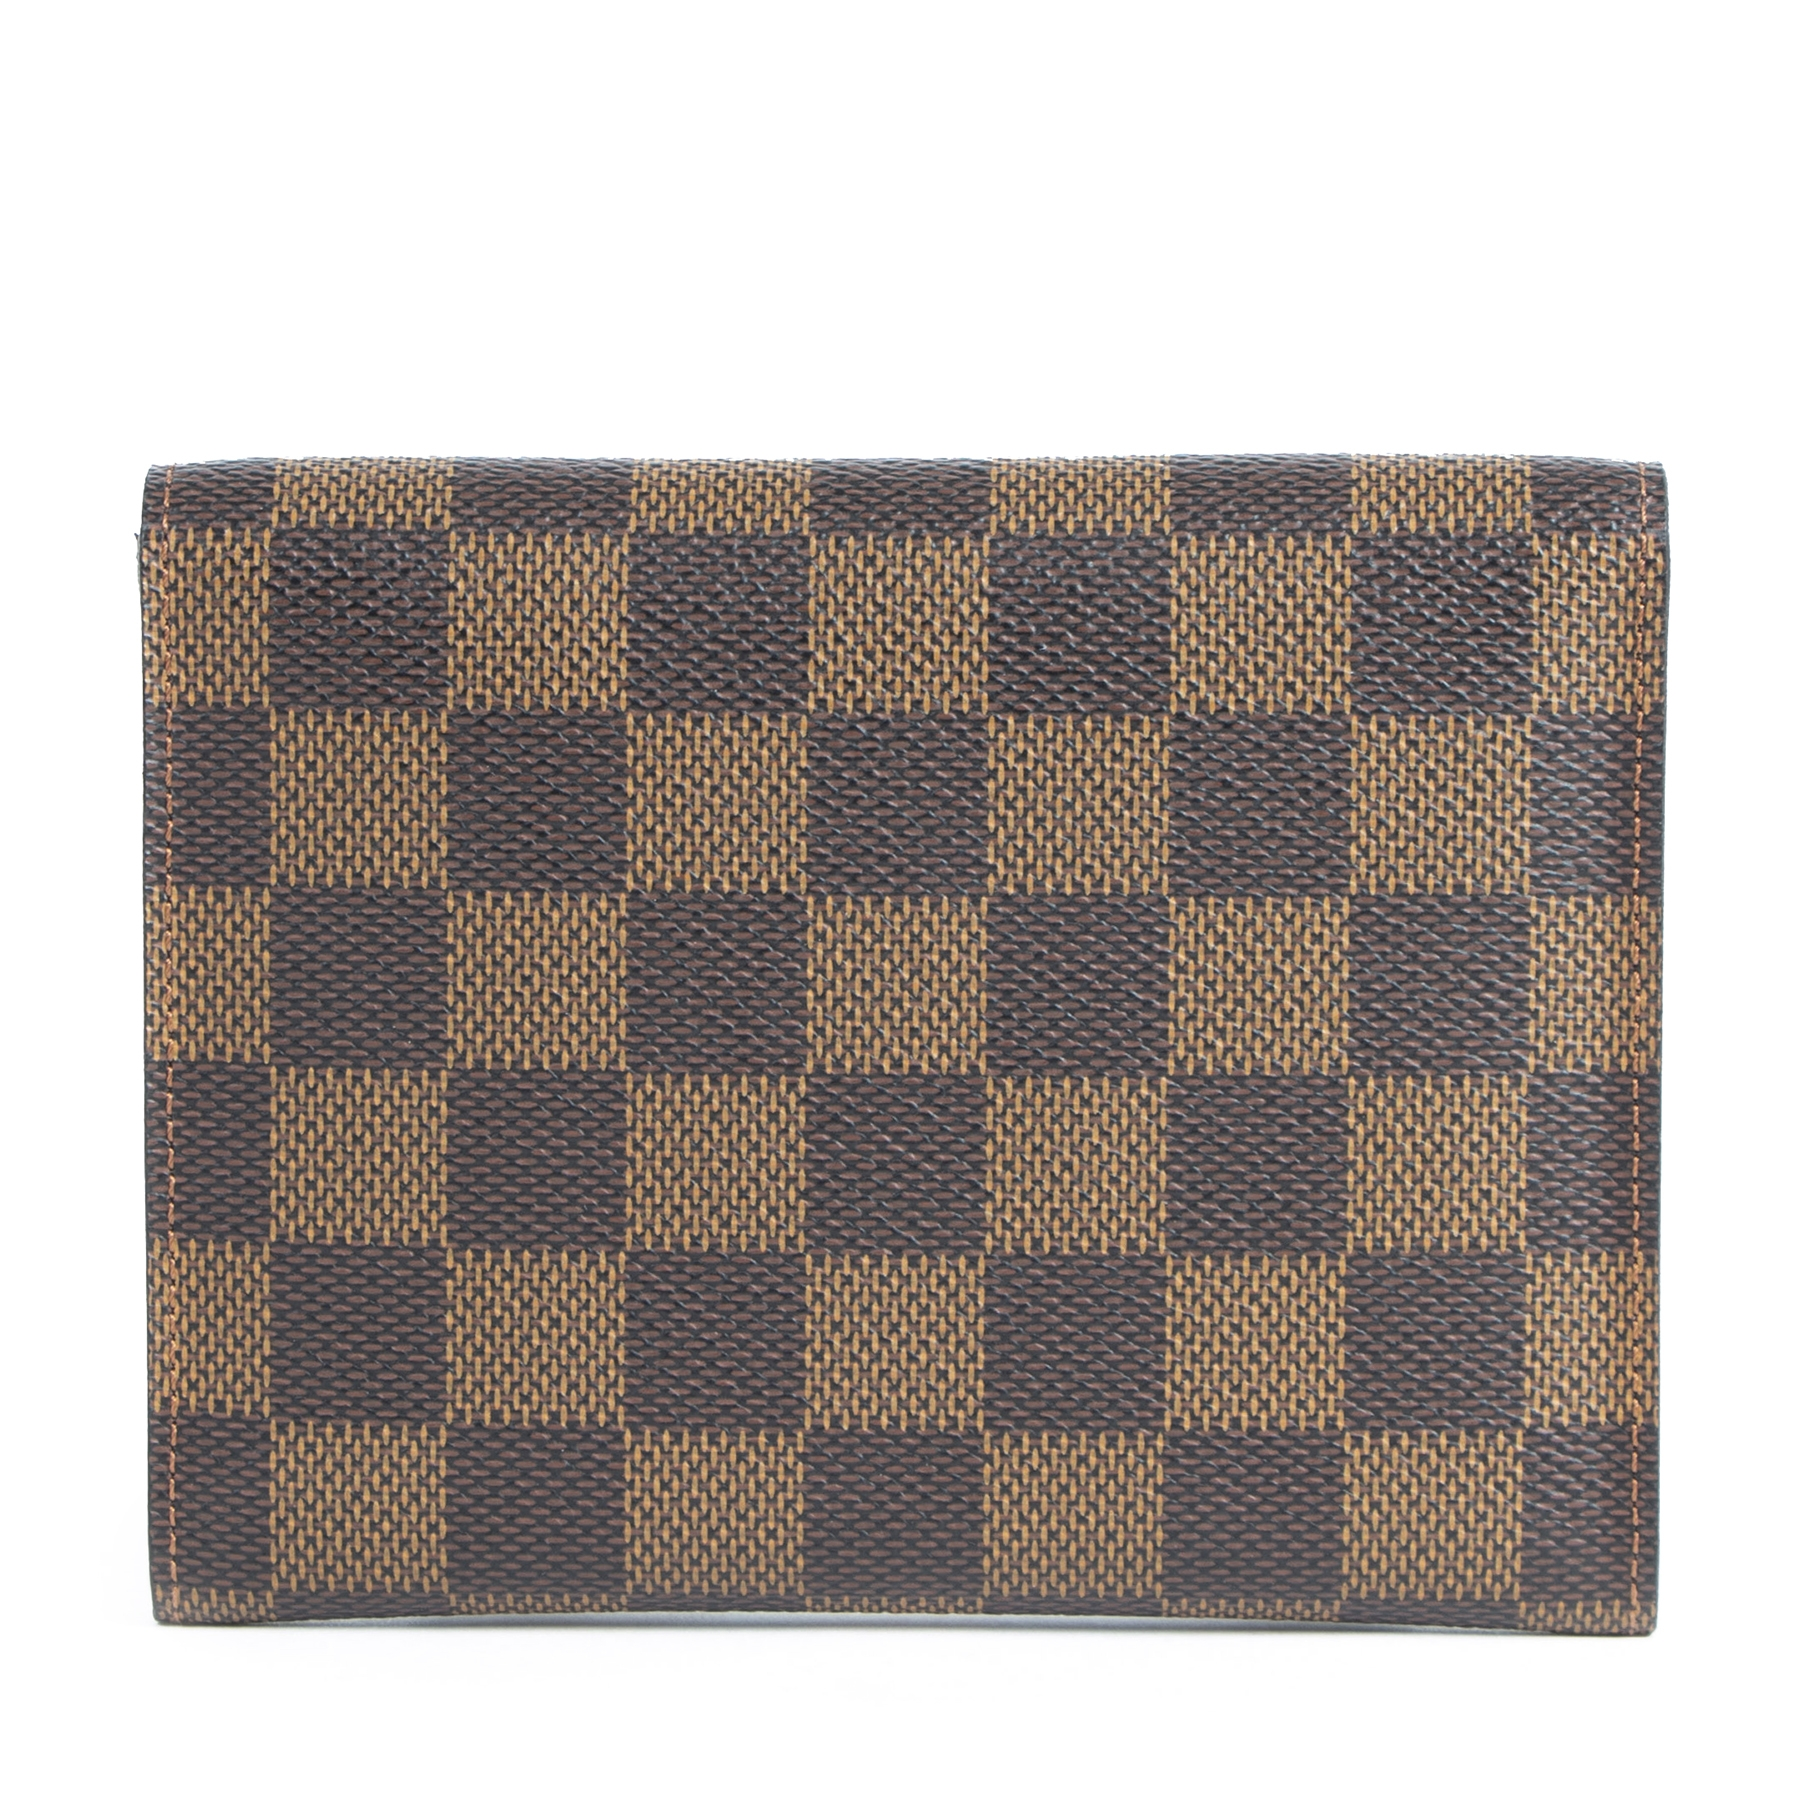 Authentic secondhand Louis Vuitton Damier Ebene Wallet designer accessories fashion luxury vintage webshop safe secure online shopping